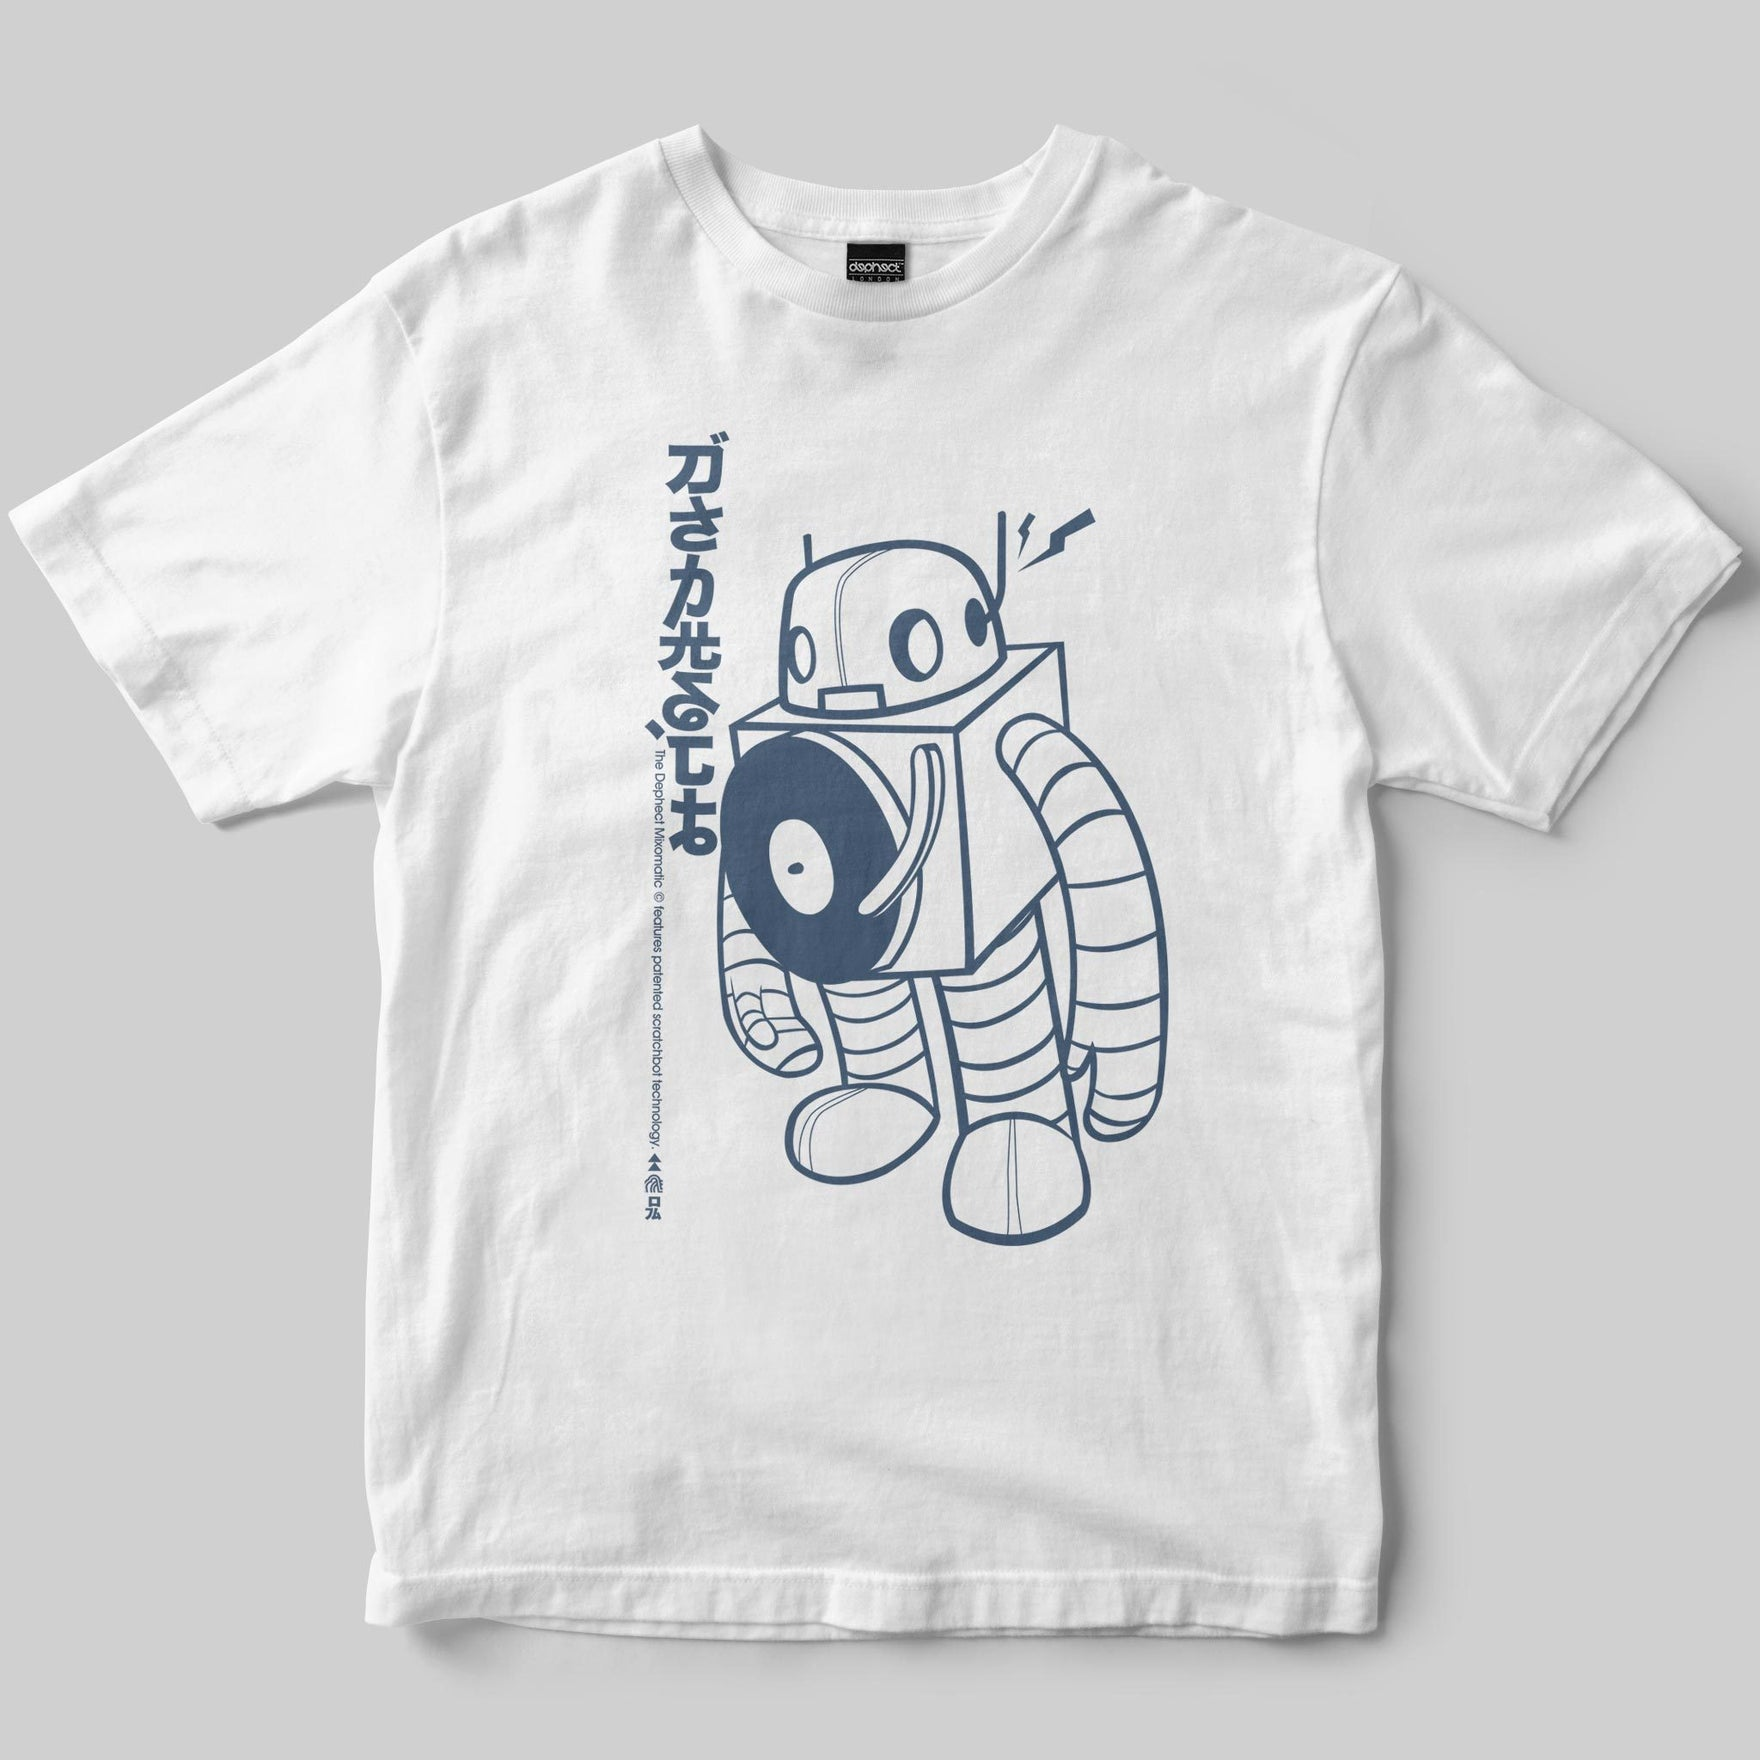 Mixomatic T-Shirt / White / by Keshone